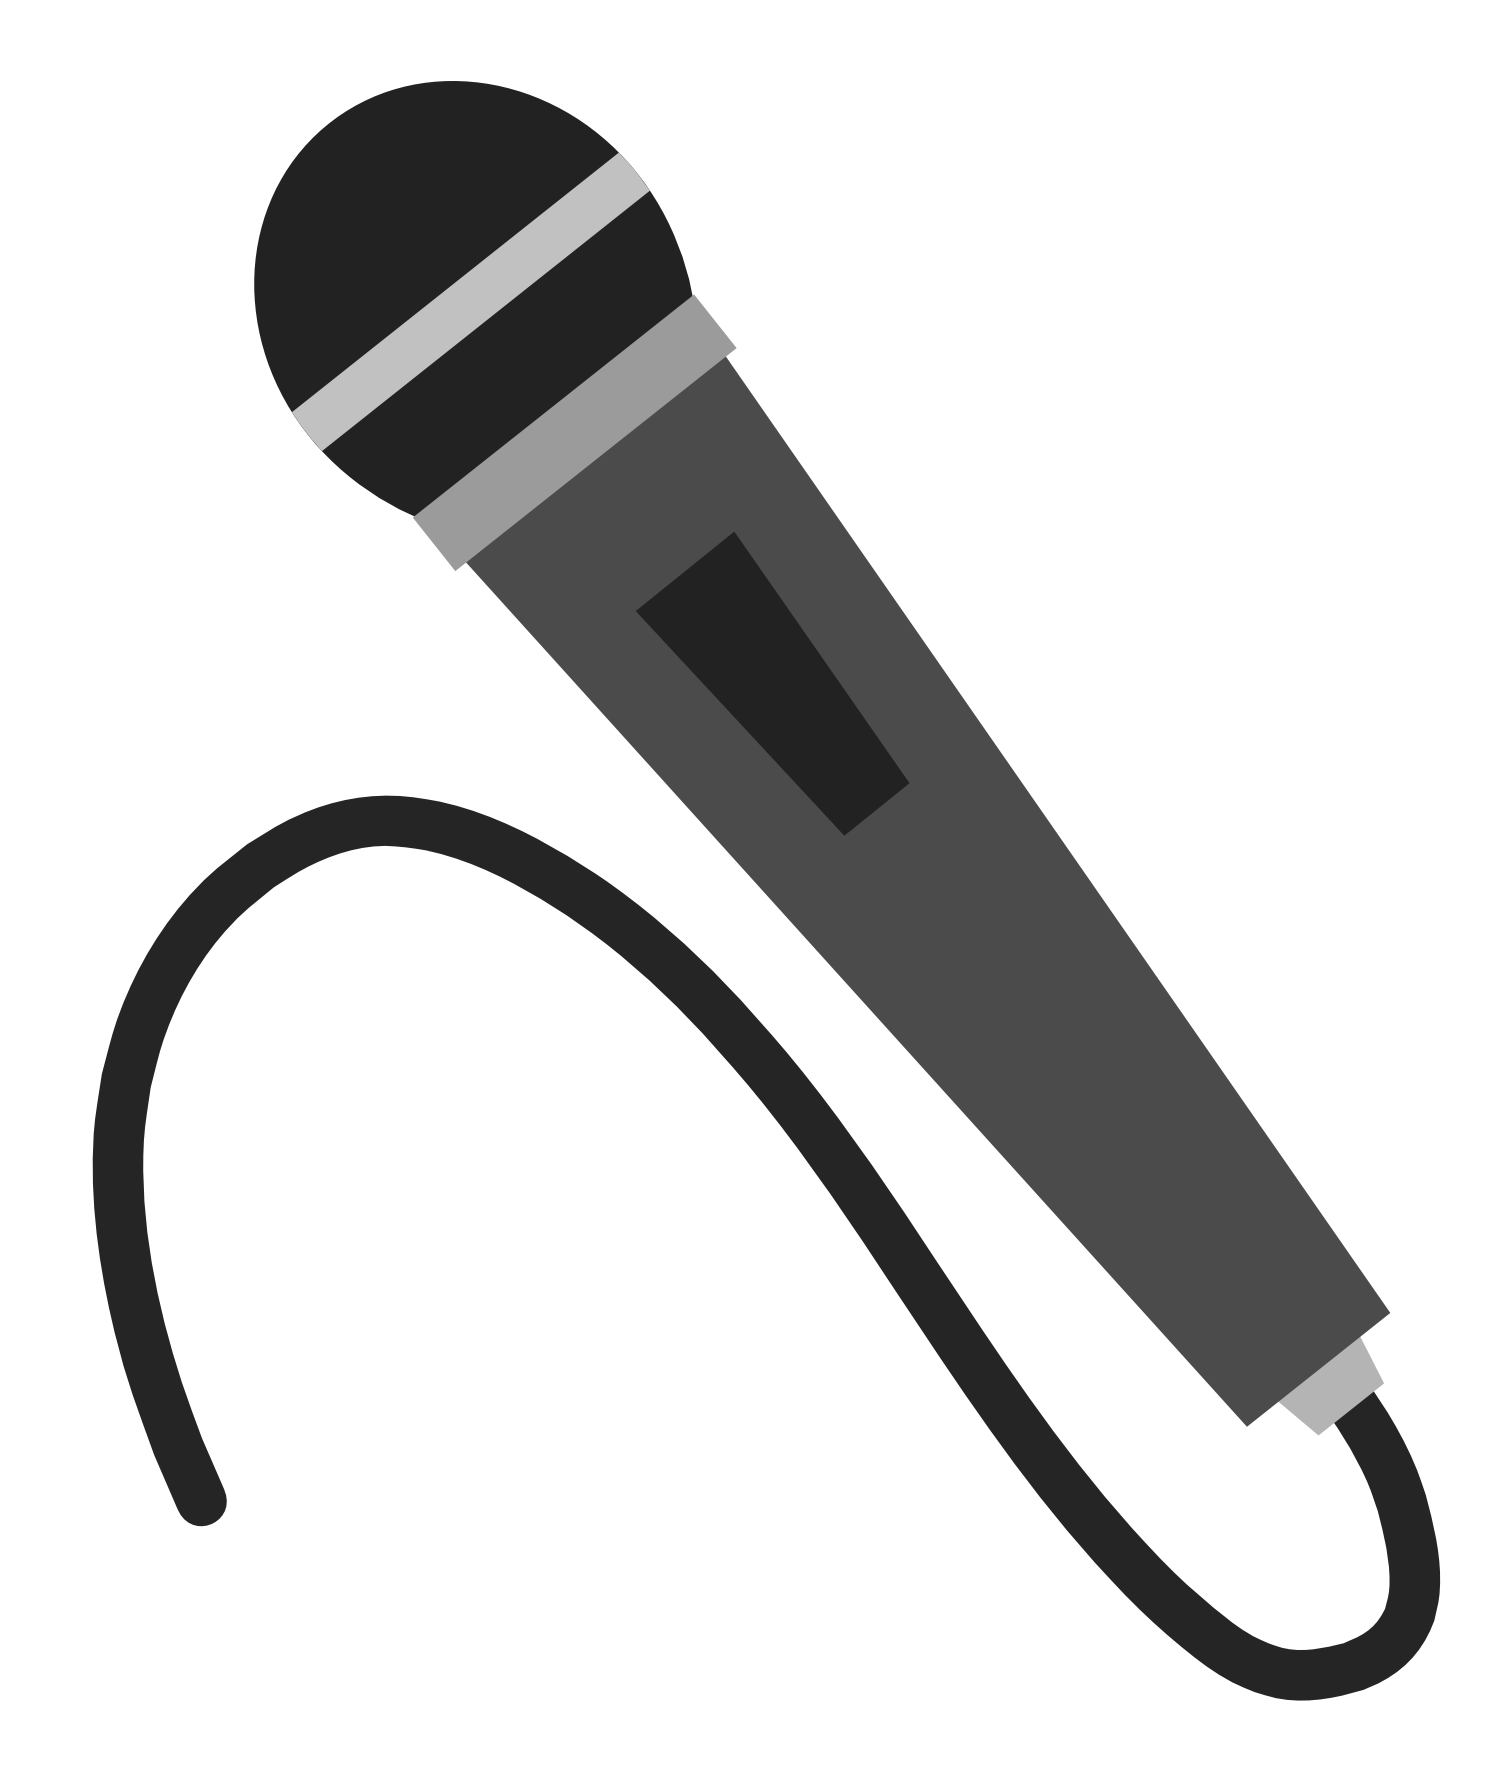 Microphone clipart 3 image